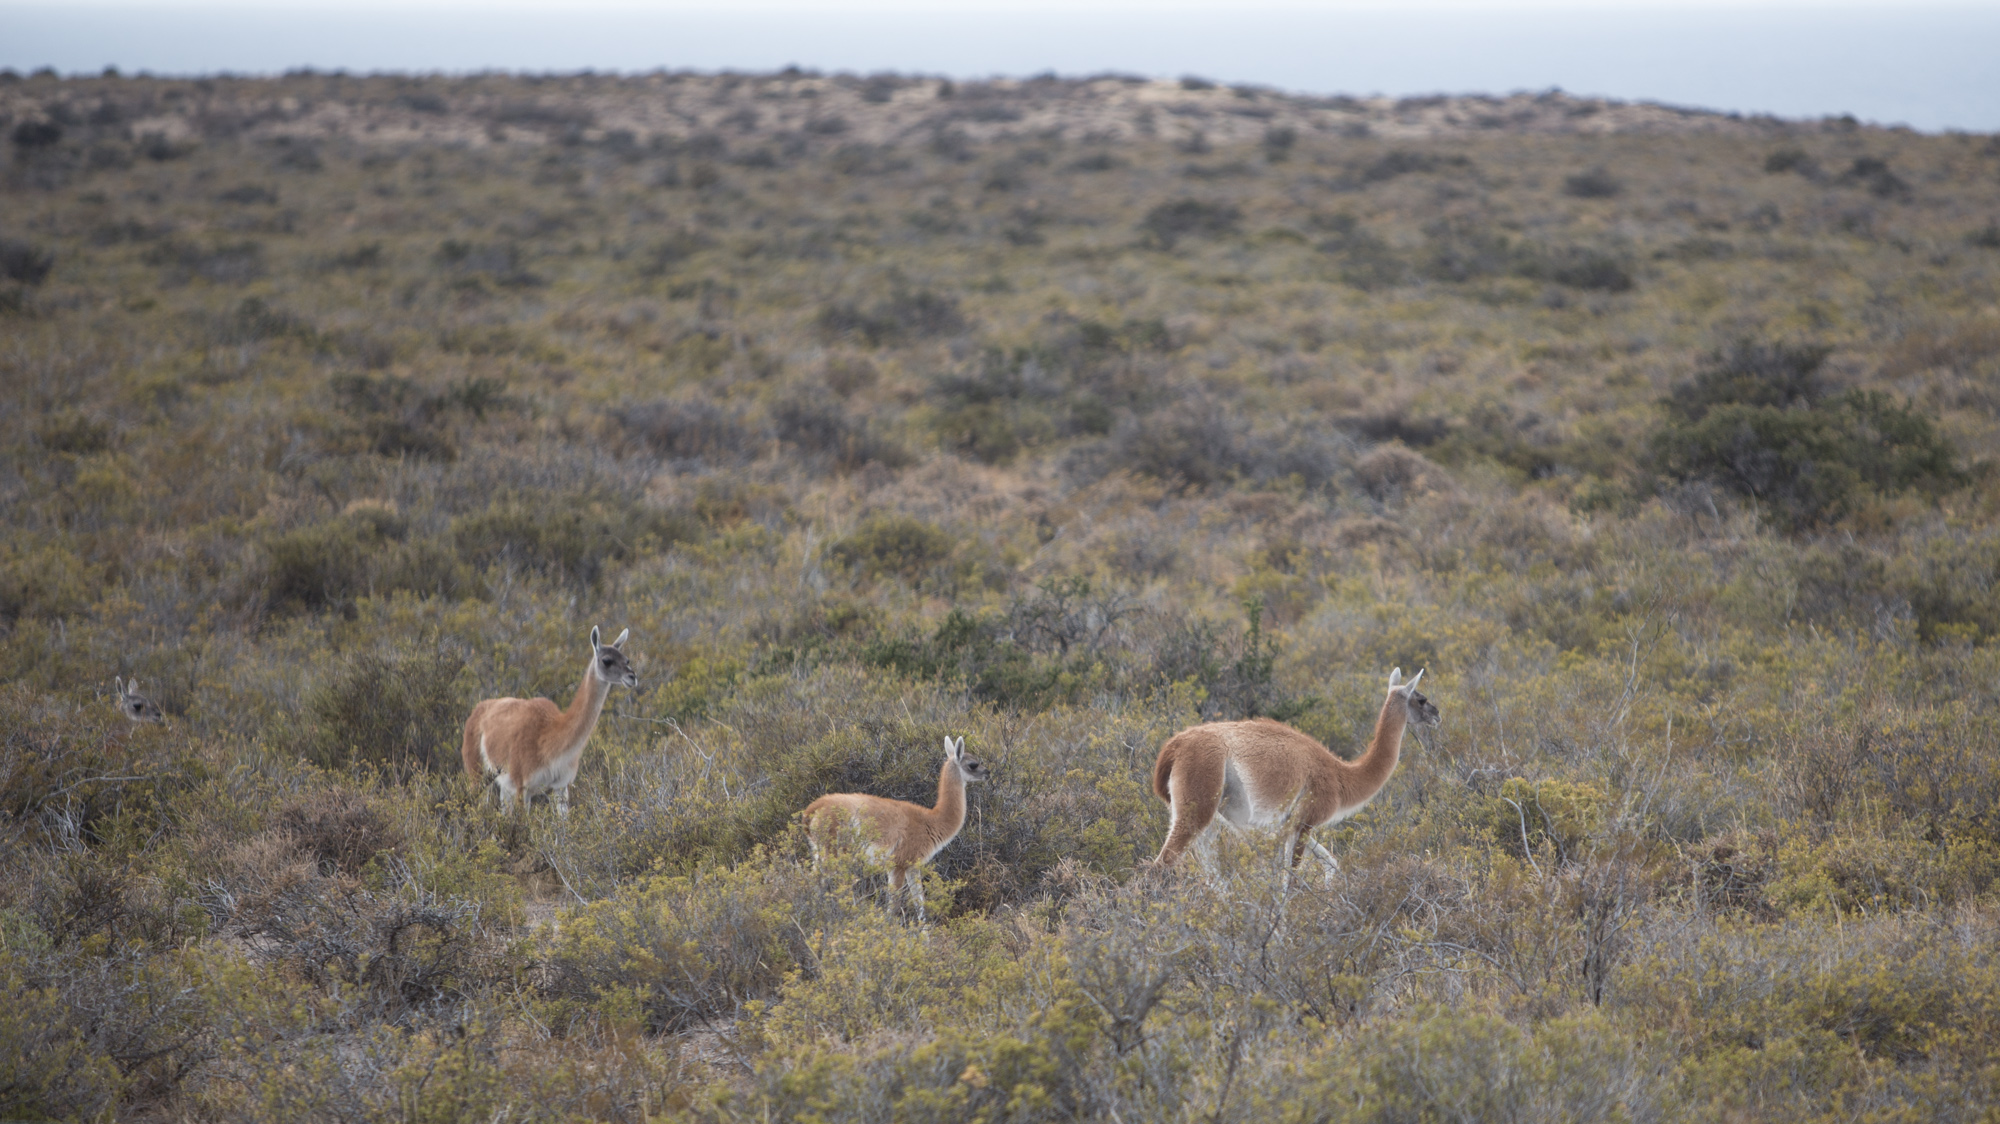 Herds of guanaco are common on the peninsula.